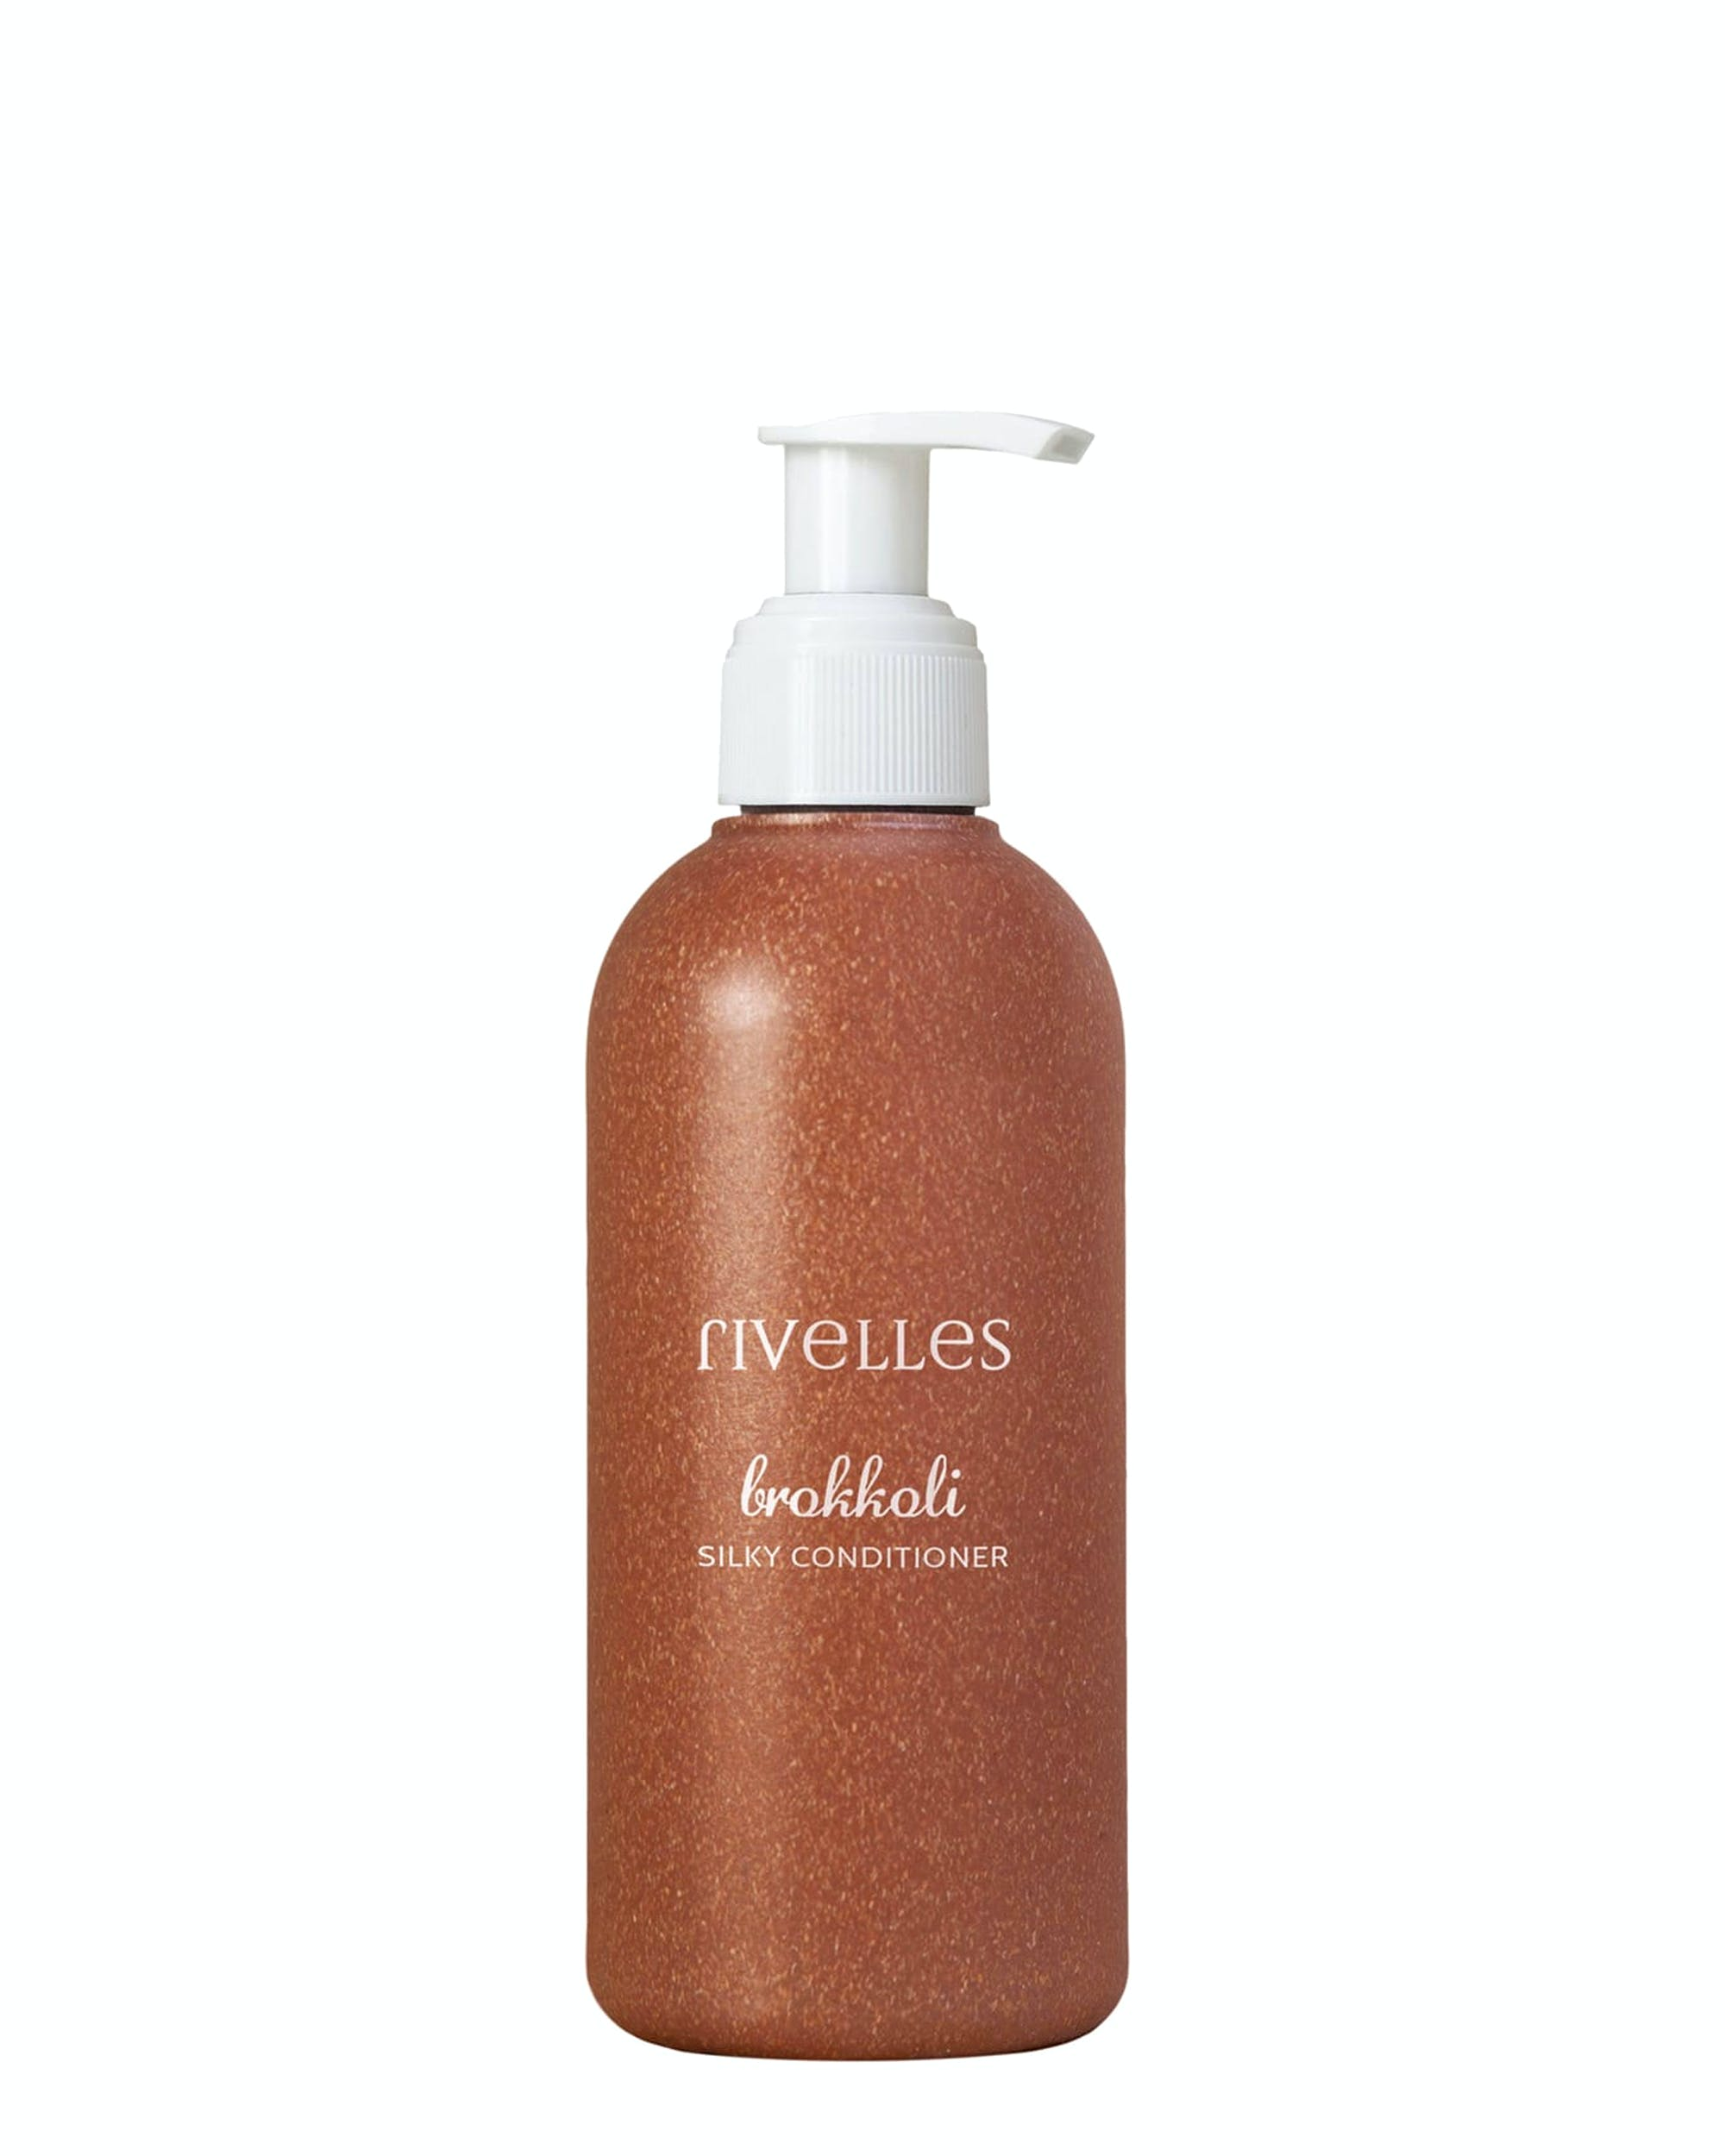 Rivelles Silky Conditioner